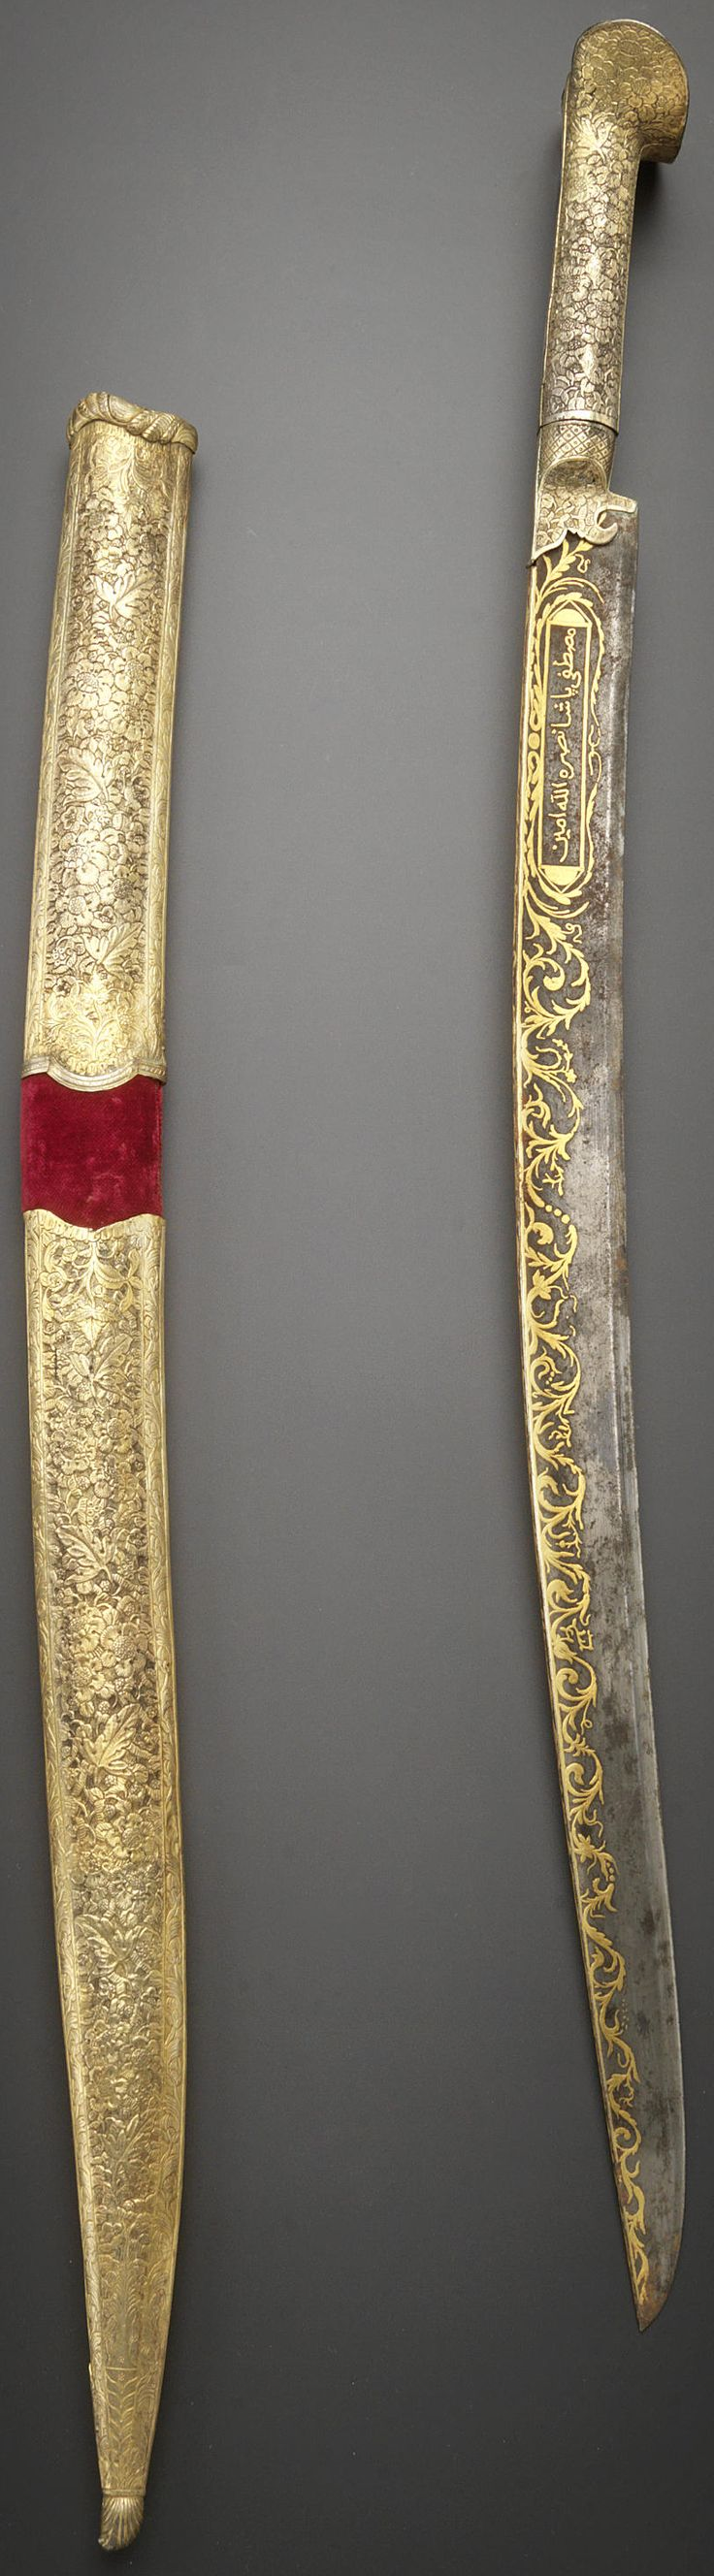 Ottoman yataghan / yatagan, circa 1800, slightly curving blade and tapering point, the spine and sides decorated with bands of gold overlay consisting of undulating leafy and floral vines, one side with an inscription-filled cartouche, the silver-gilt hilt and scabbard with repousse decoration consisting of profuse floral motifs, 76 cm. long. The inscriptions comprise: mustapha pasha nasarahu allal amin, 'Mustapha Pasha may Gold help him, Amen!'.